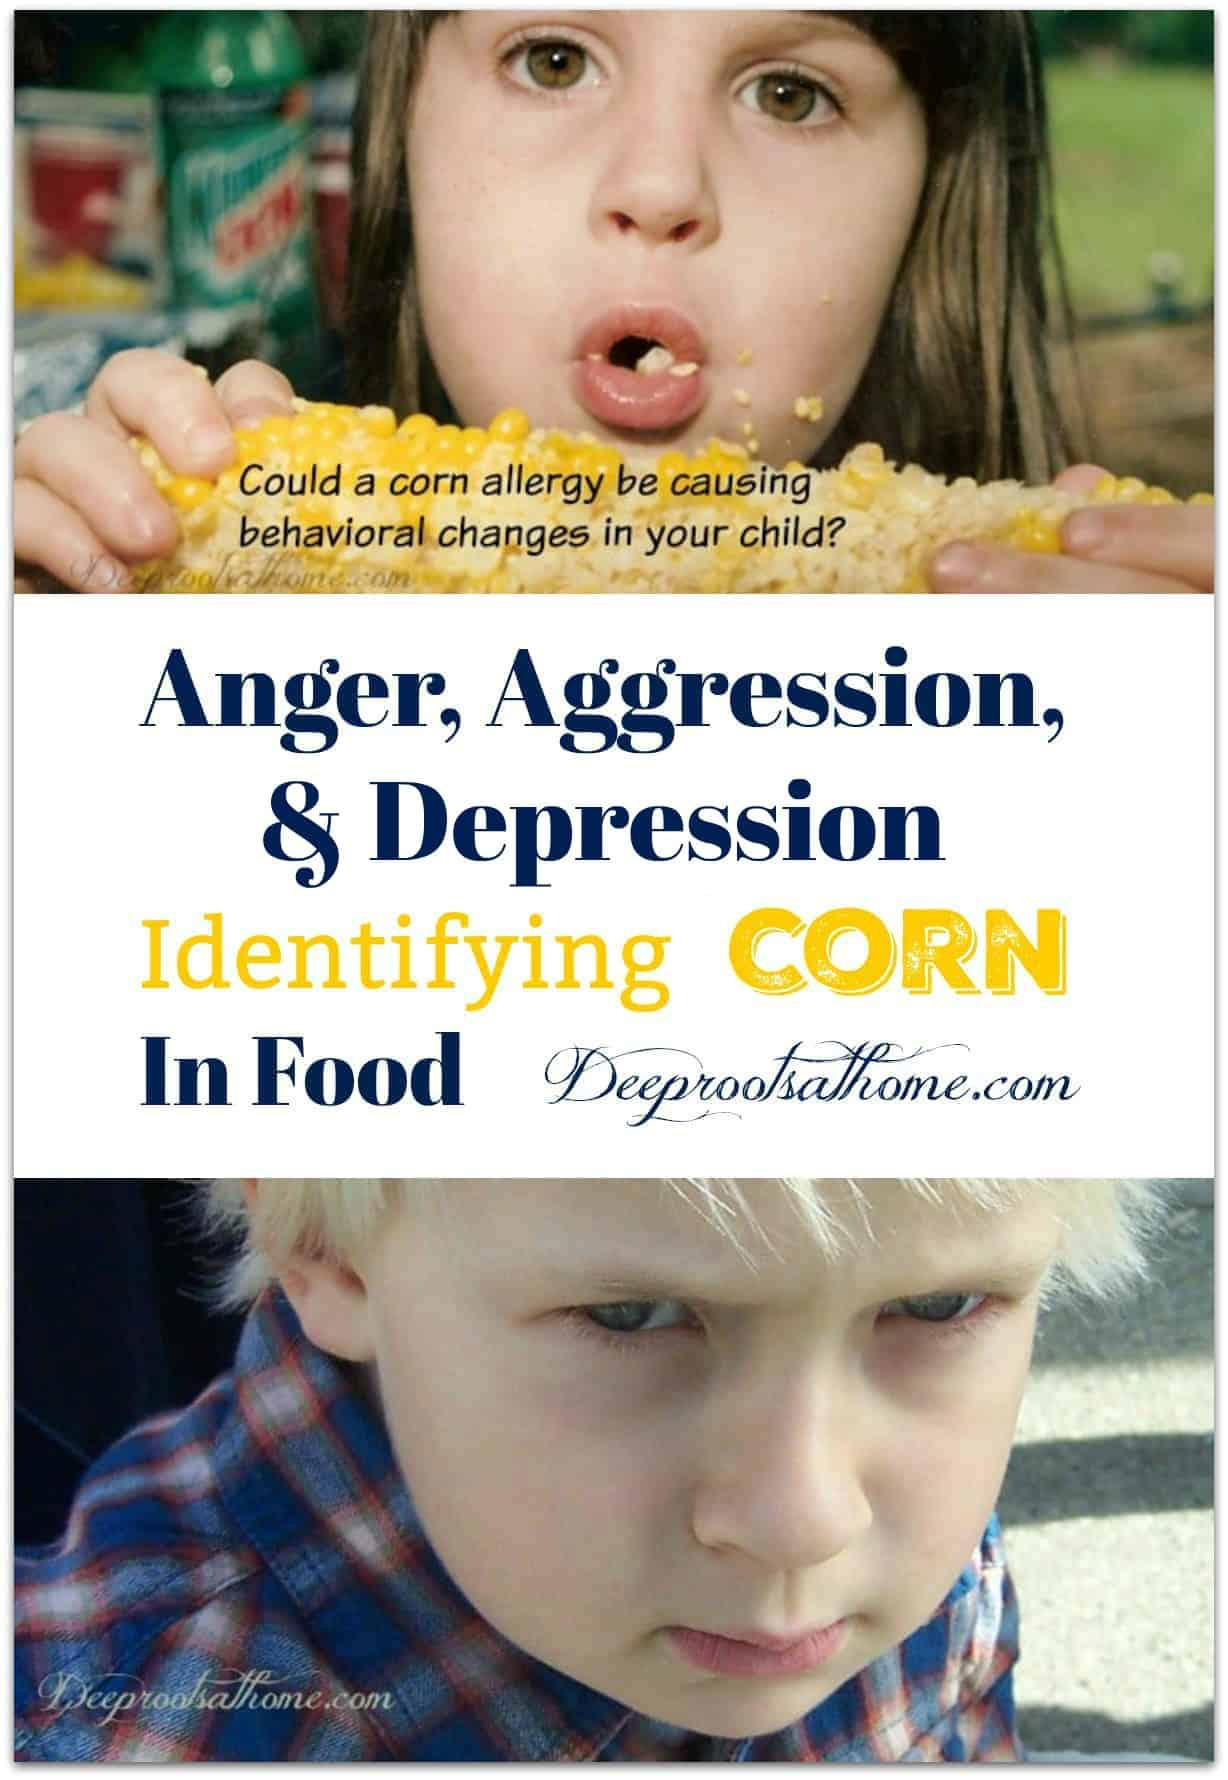 Anger, Aggression, Depression? Identifying Corn In Food. A 8 or 9 year old girl eating corn on the cob with pieces of corn stuck to her face. Also a young boy with a sullen, defiant expression.